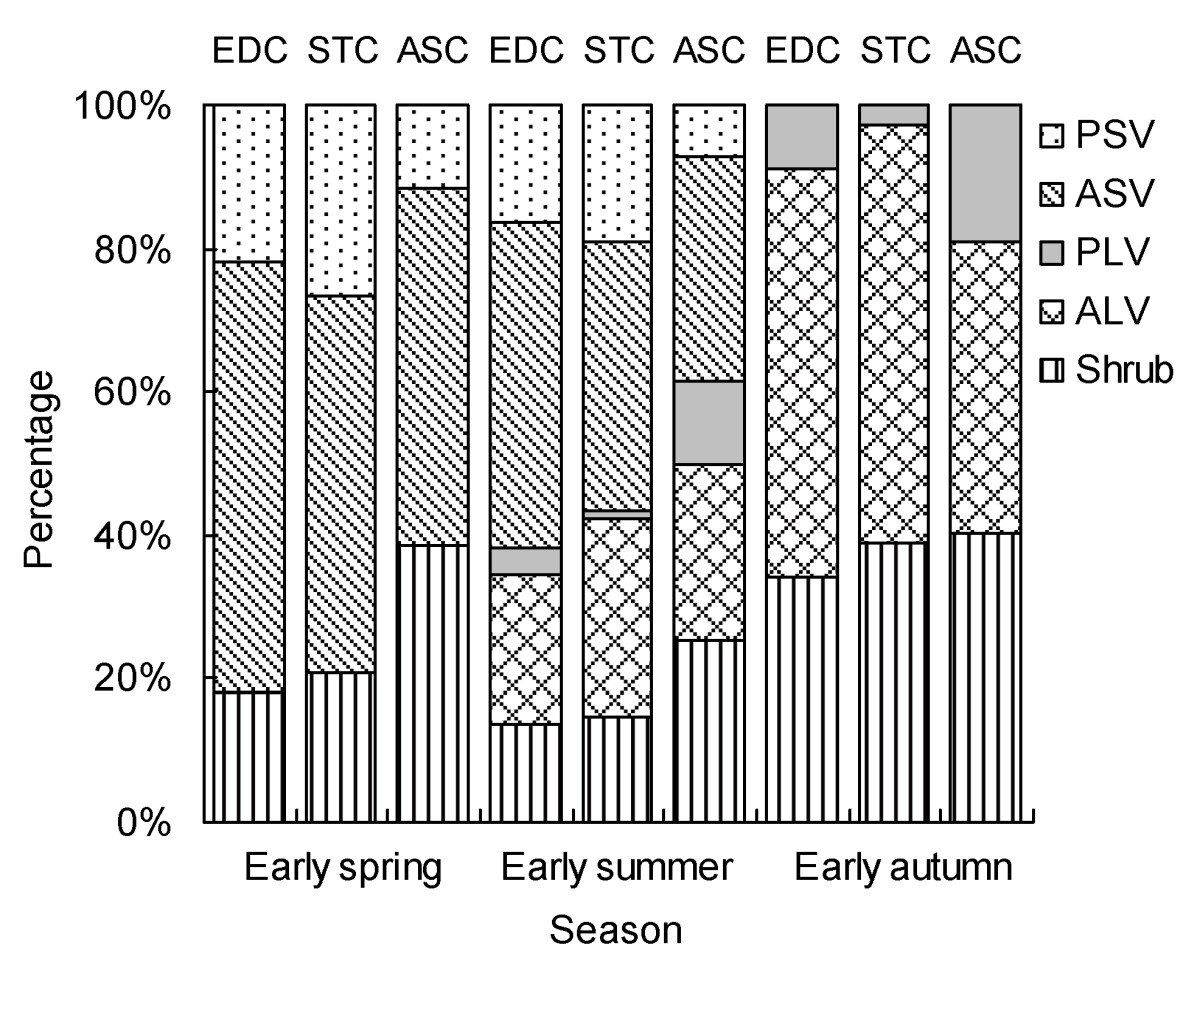 https://static-content.springer.com/image/art%3A10.1186%2F1999-3110-54-59/MediaObjects/40529_2012_Article_51_Fig4_HTML.jpg